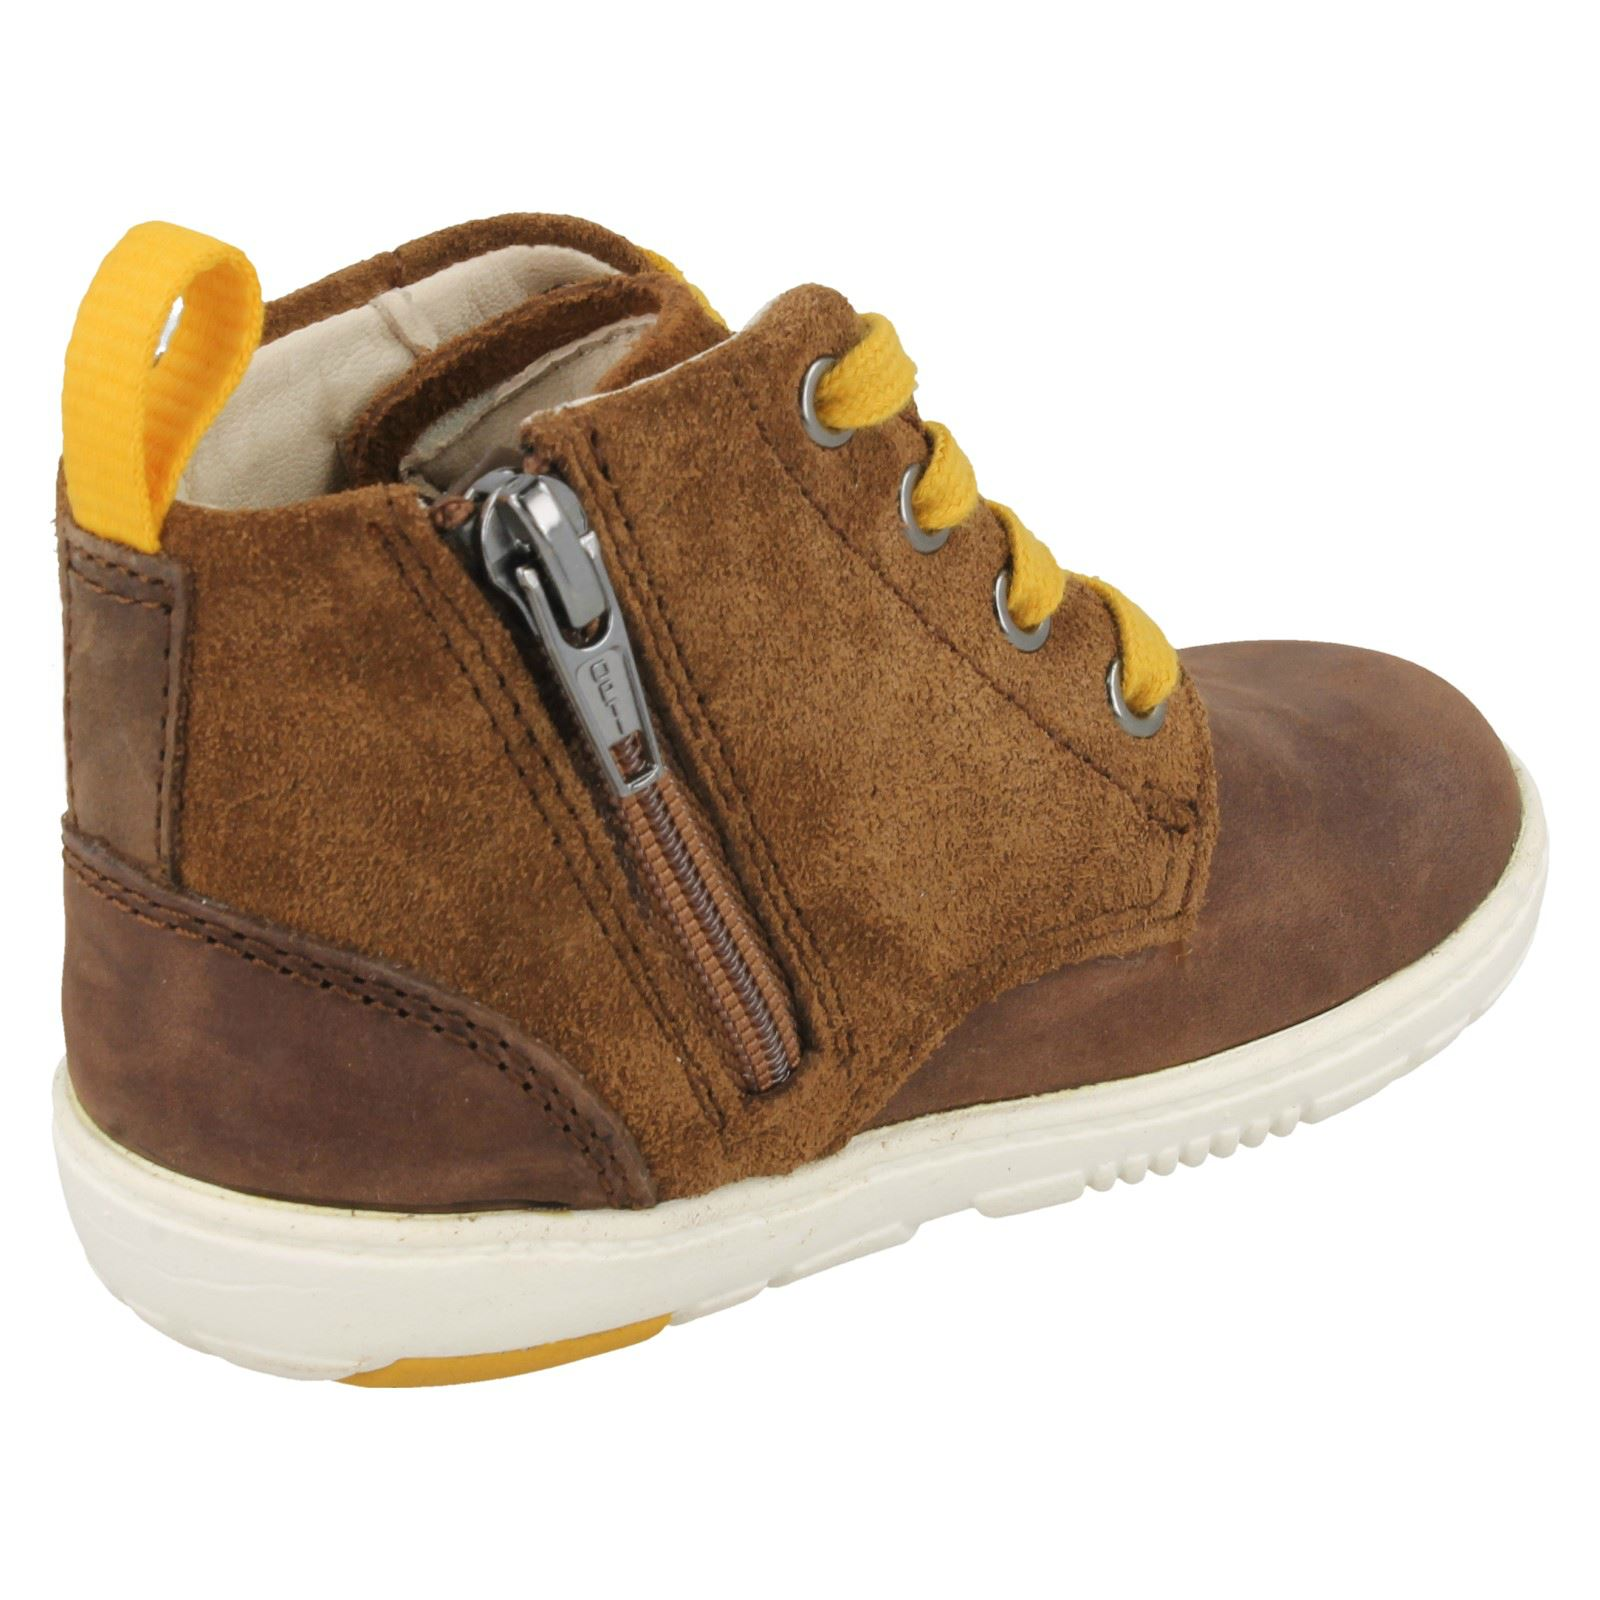 Boys Clarks Maxi Hehe Fst Brown Or Navy Leather Lace Up Ankle Boots F /& G Widths